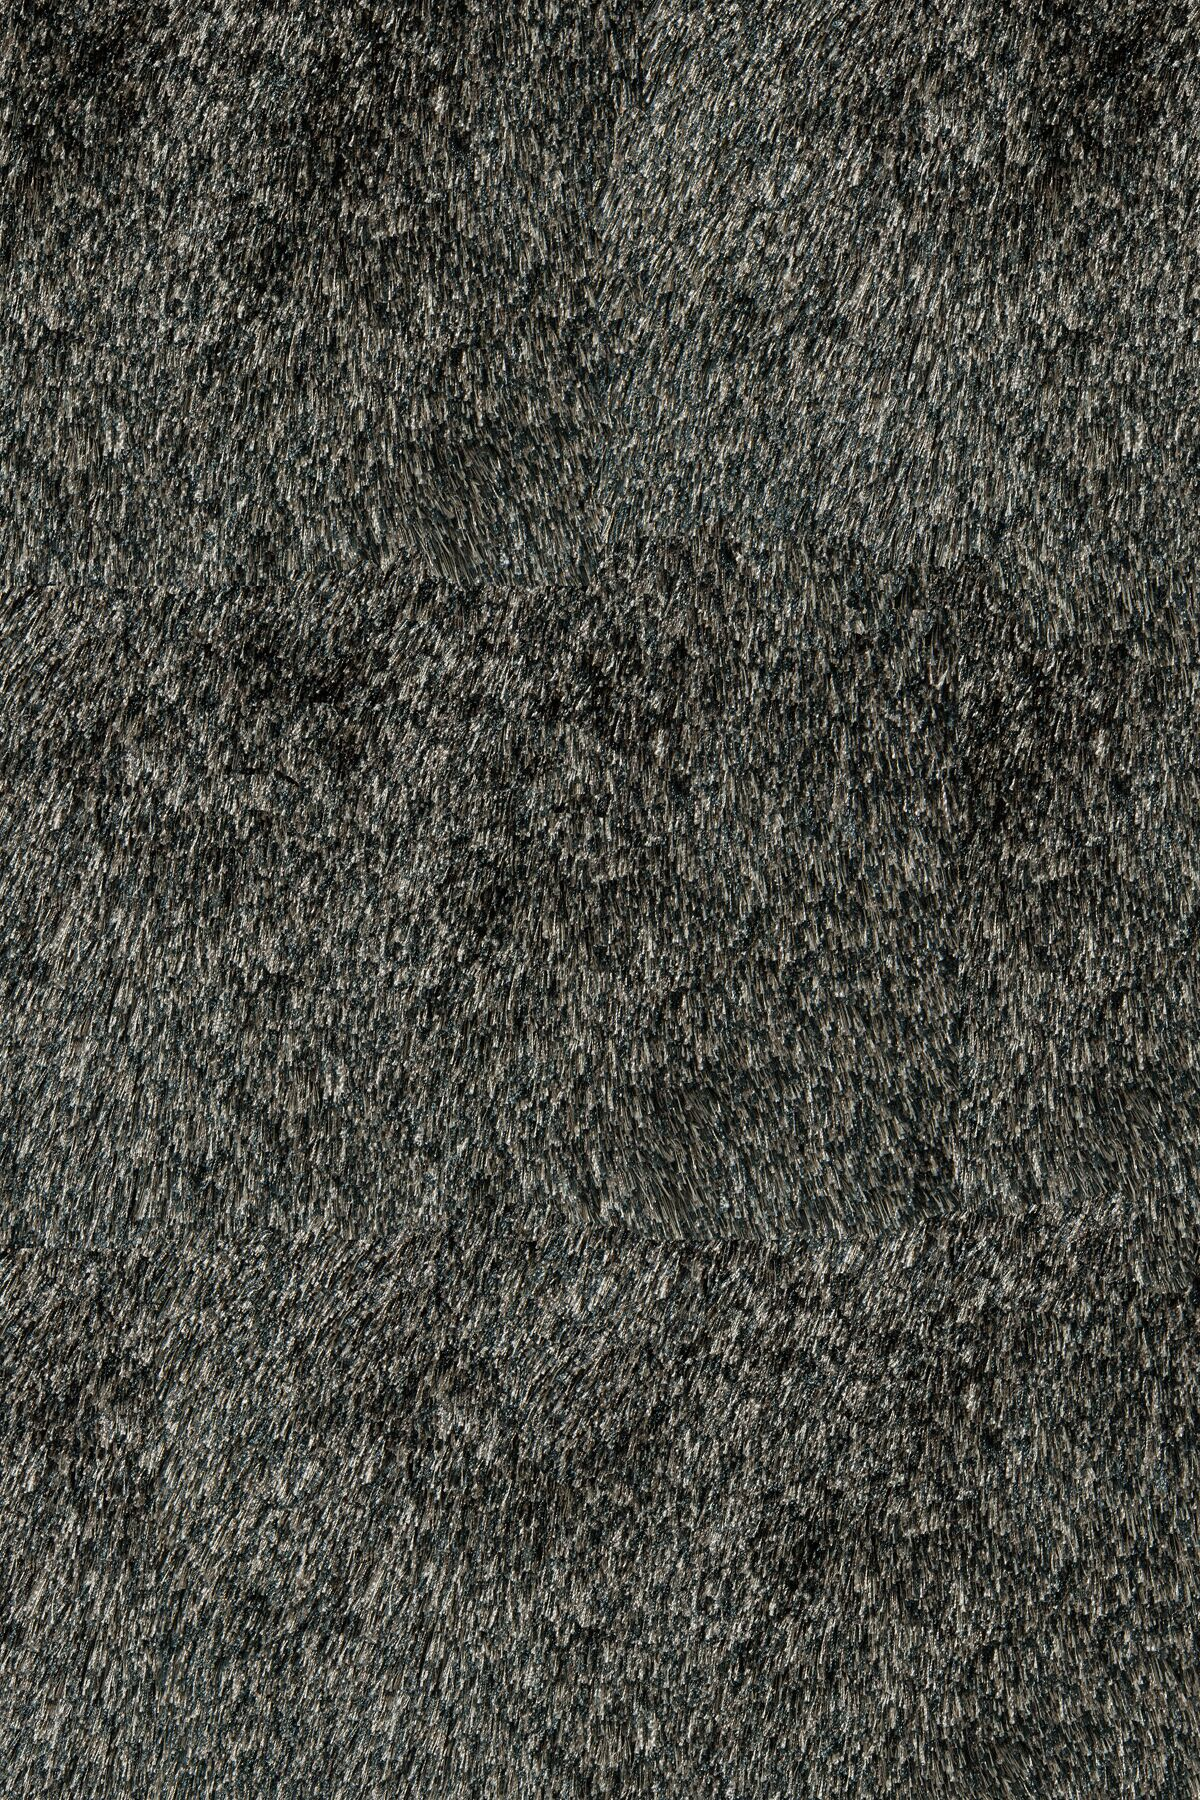 Ciera Hand-Tufted Carbon Area Rug Rug Size: Rectangle 9' x 12'